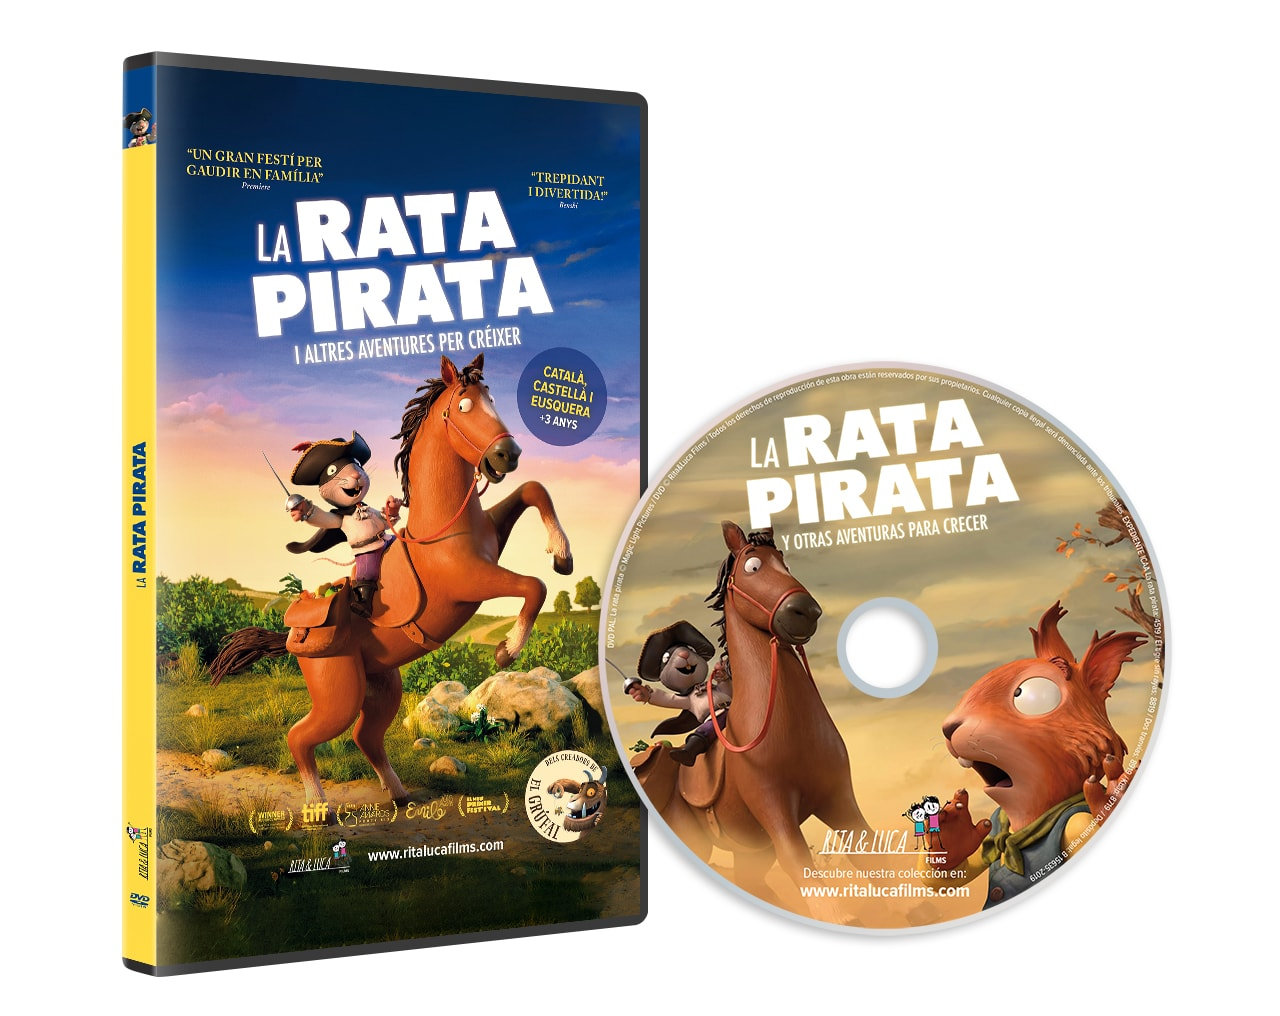 LA-RATA-PIRATA-DVD-CAT